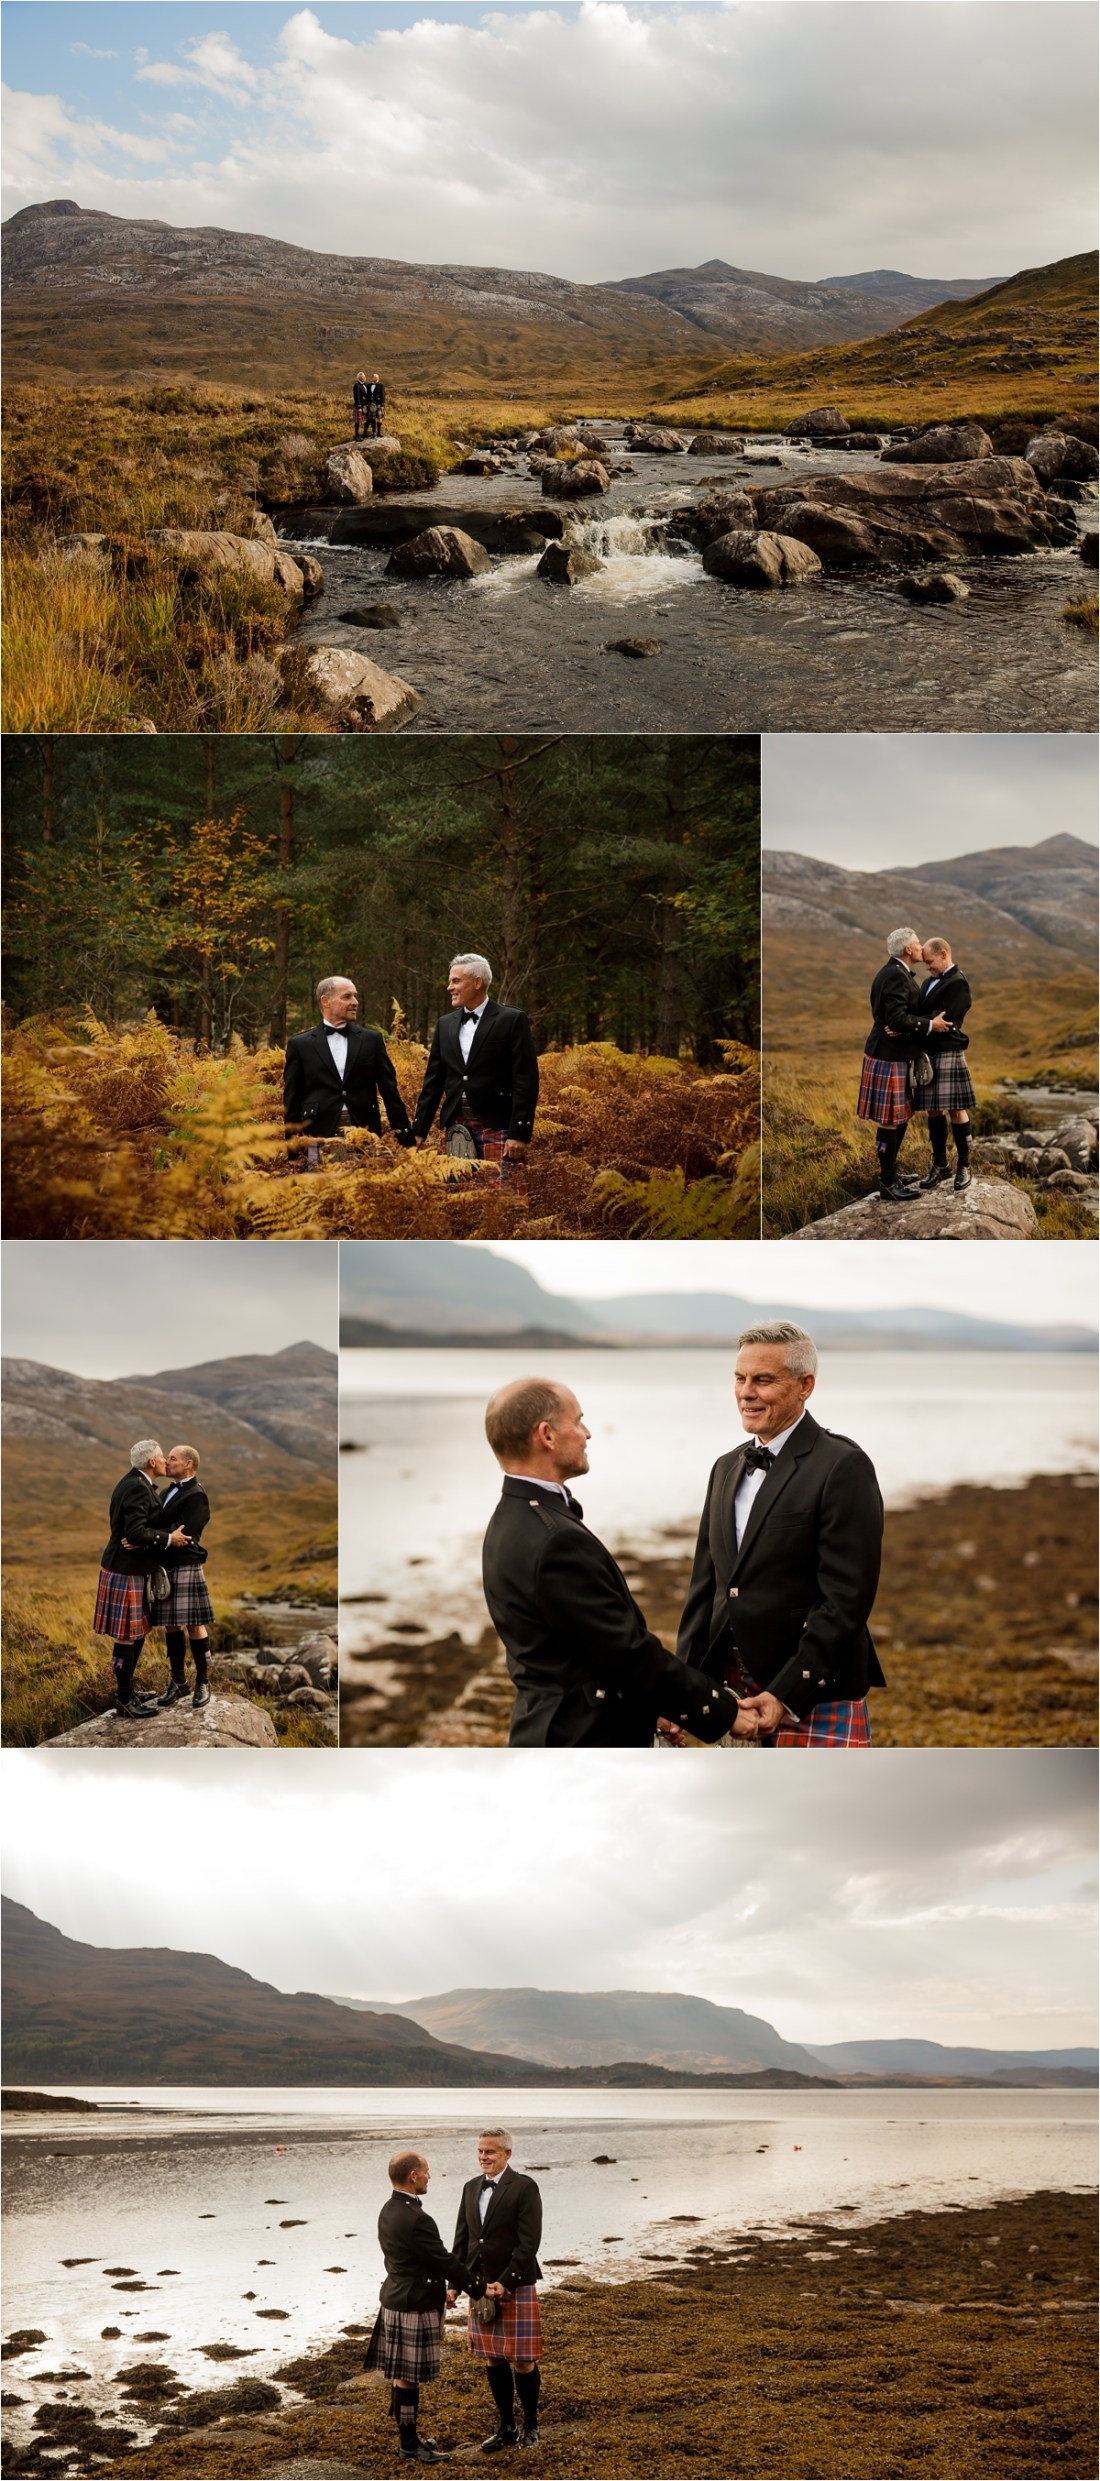 Two grooms in Kilts for this enchanting elopement in Scotland by Lynne Kennedy Photography